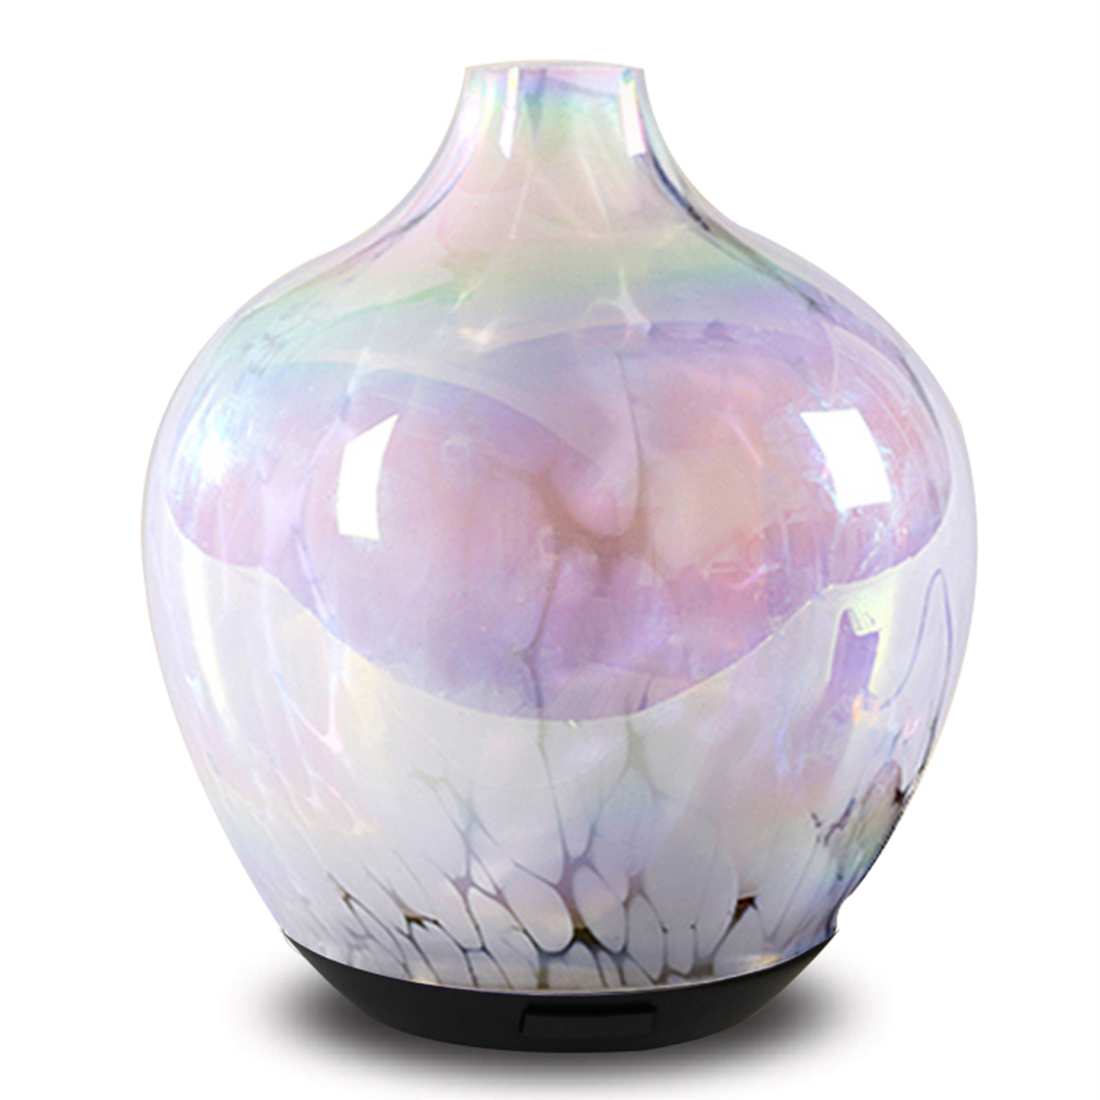 Art Glass Ultrasoniese Aromaterapie Diffuser